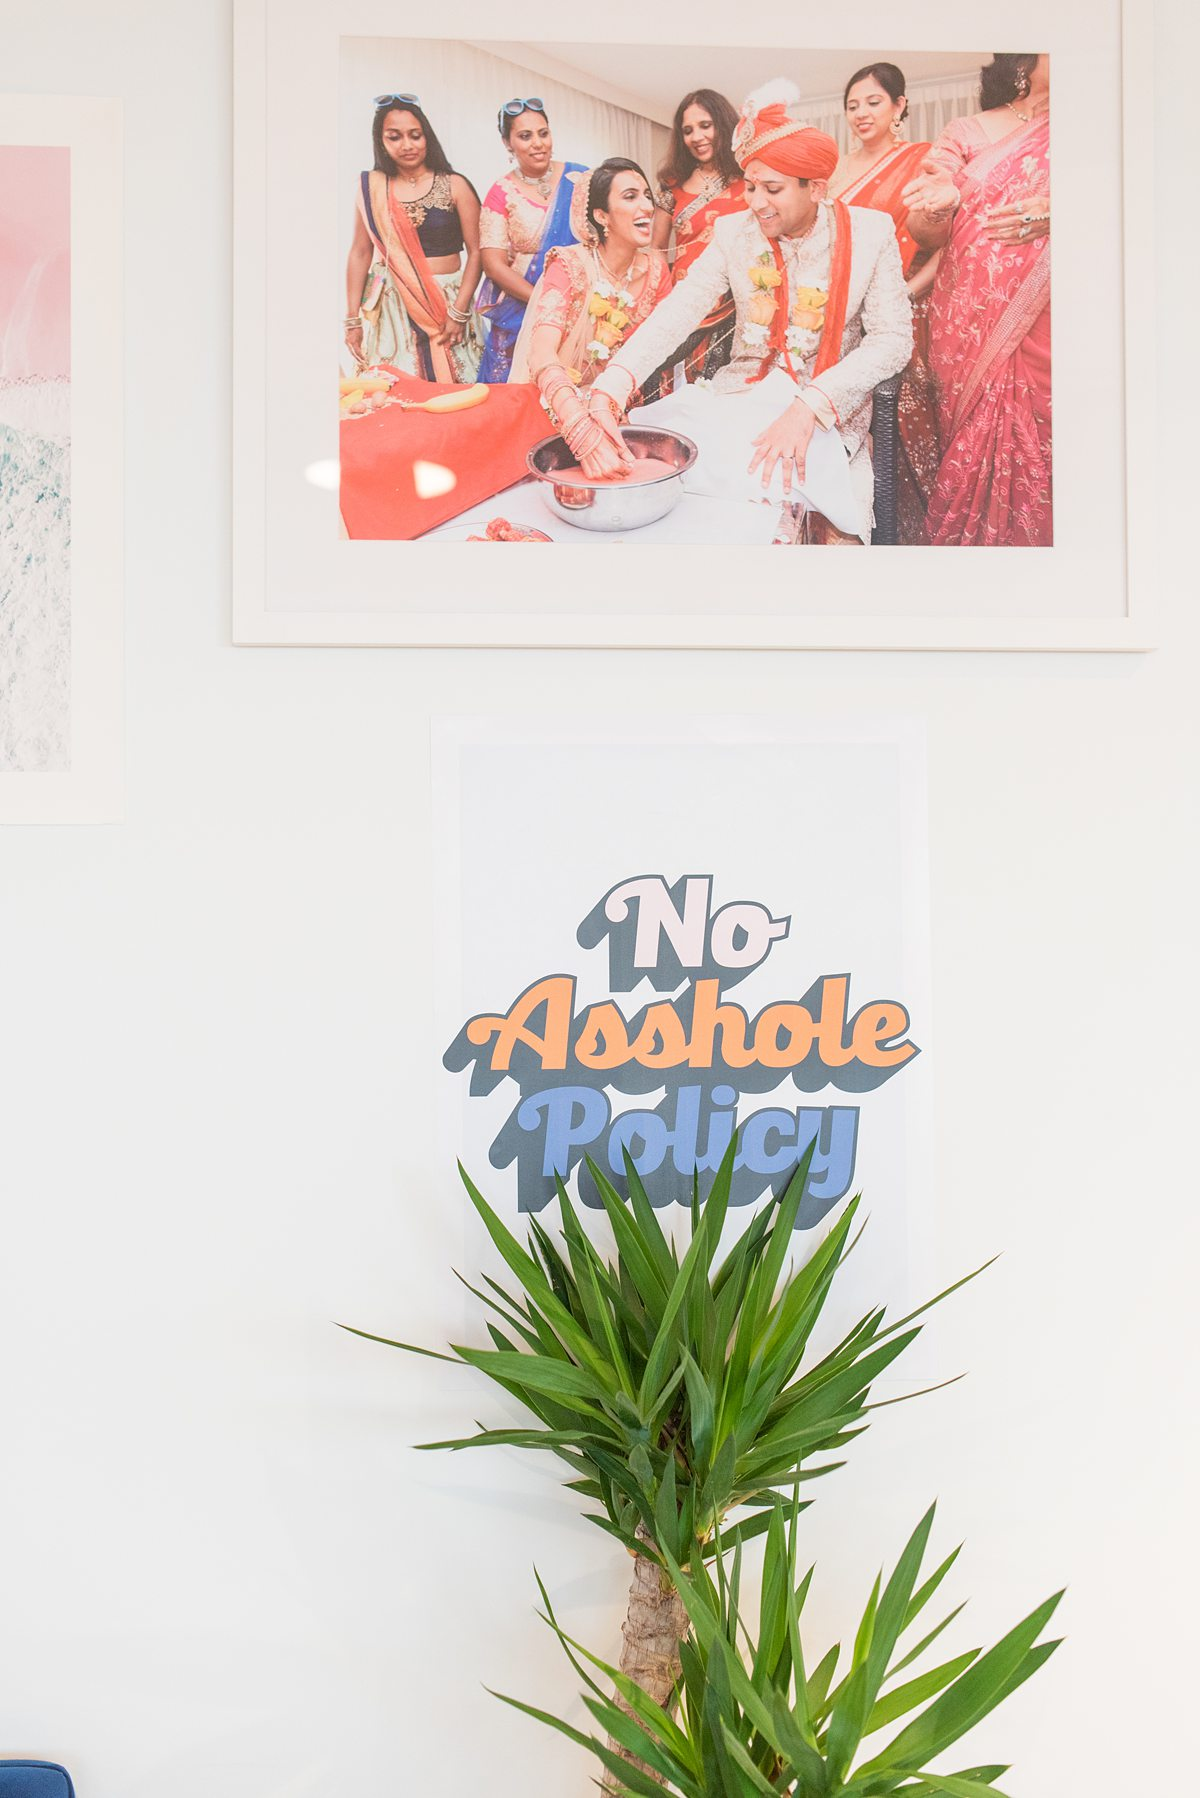 Zola Headquarters in NYC is full of great design and catchy posters. We take a look behind the scenes of the wedding website and app HQ in NYC, with Mikkel Paige Photography.